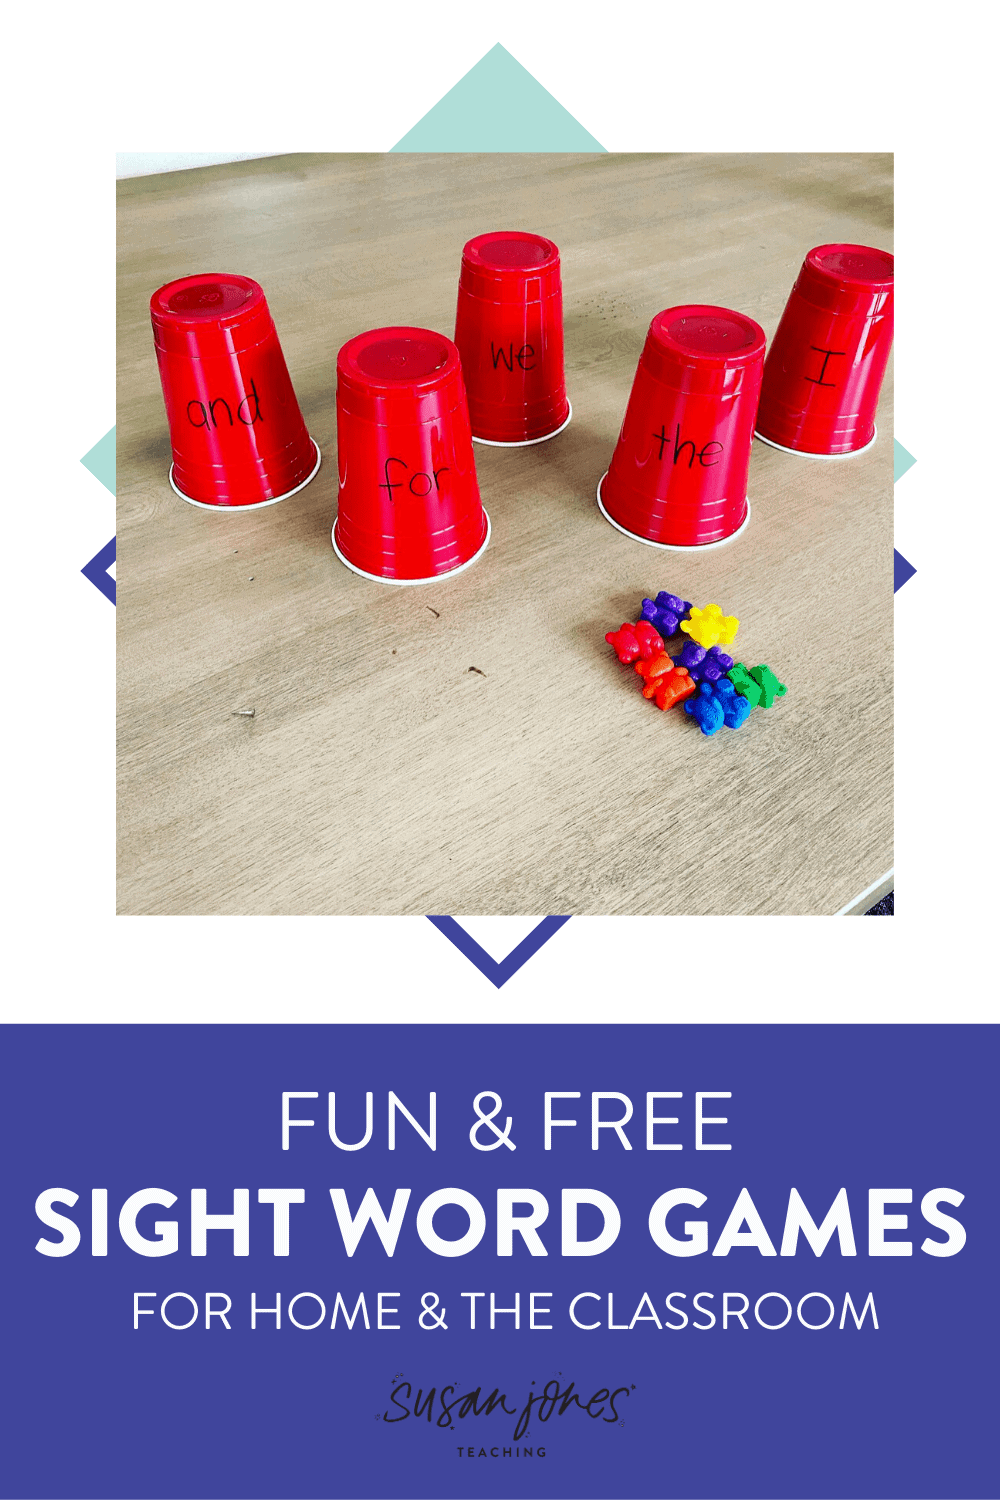 I love these 3 fun and free sight word activities to play at home or in the classroom because they're engaging! Head on over to the blog post to see the different sight word games and grab some editable sight word worksheets!